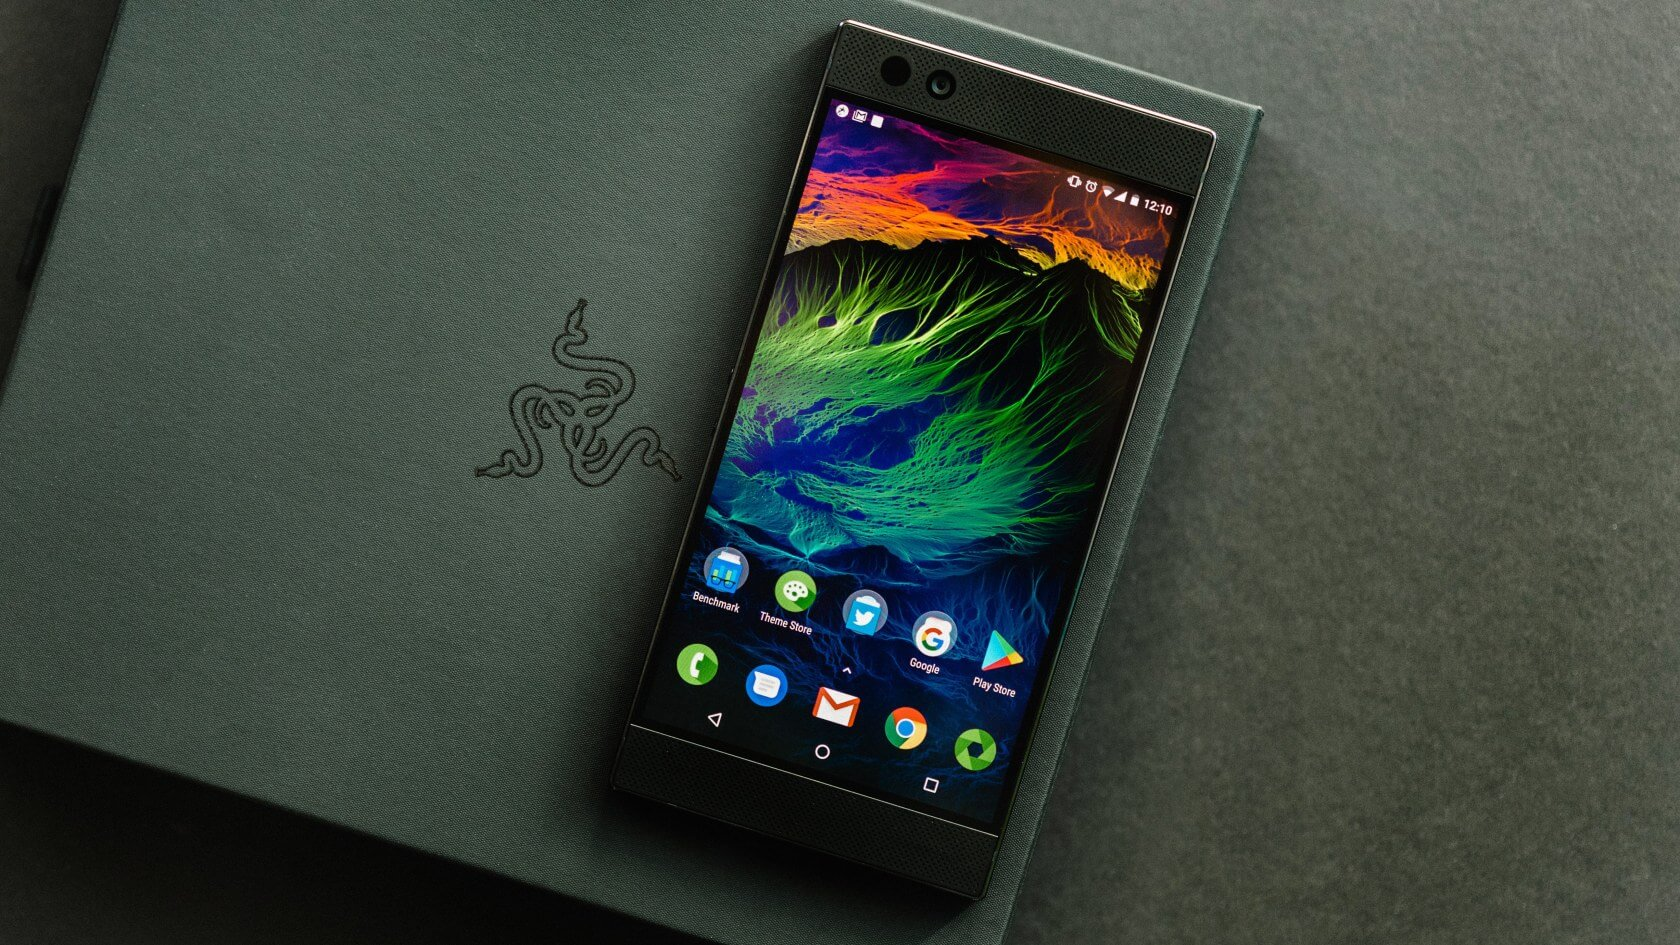 Razer Phone 2 officially announced with Snapdragon 845 and improved design